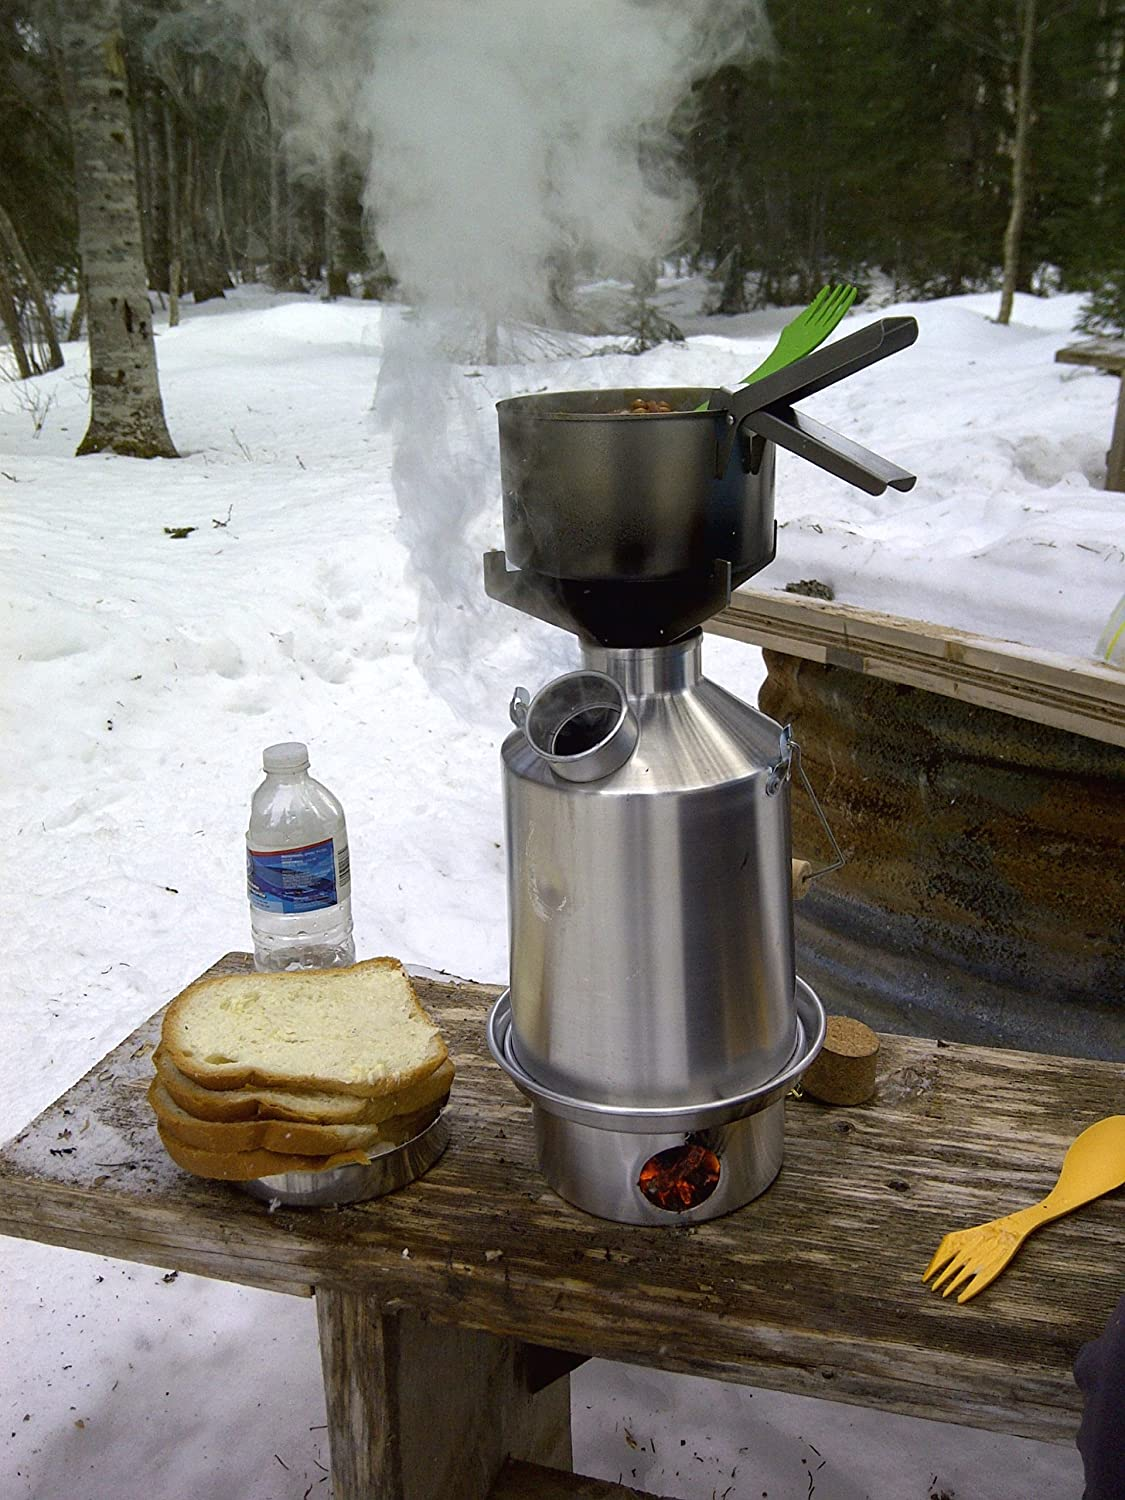 'Scout' Kelly Kettle® - BASIC KIT (1.2 ltr Aluminium Kettle + Steel Cook Set + Steel pot support + Green Whistle which replaces the Orange Stopper) WITH UPGRADED STAINLESS STEEL FIRE-BASE AS STANDARD. Camping Kettle and Camp Stove in one. Ultra fast light